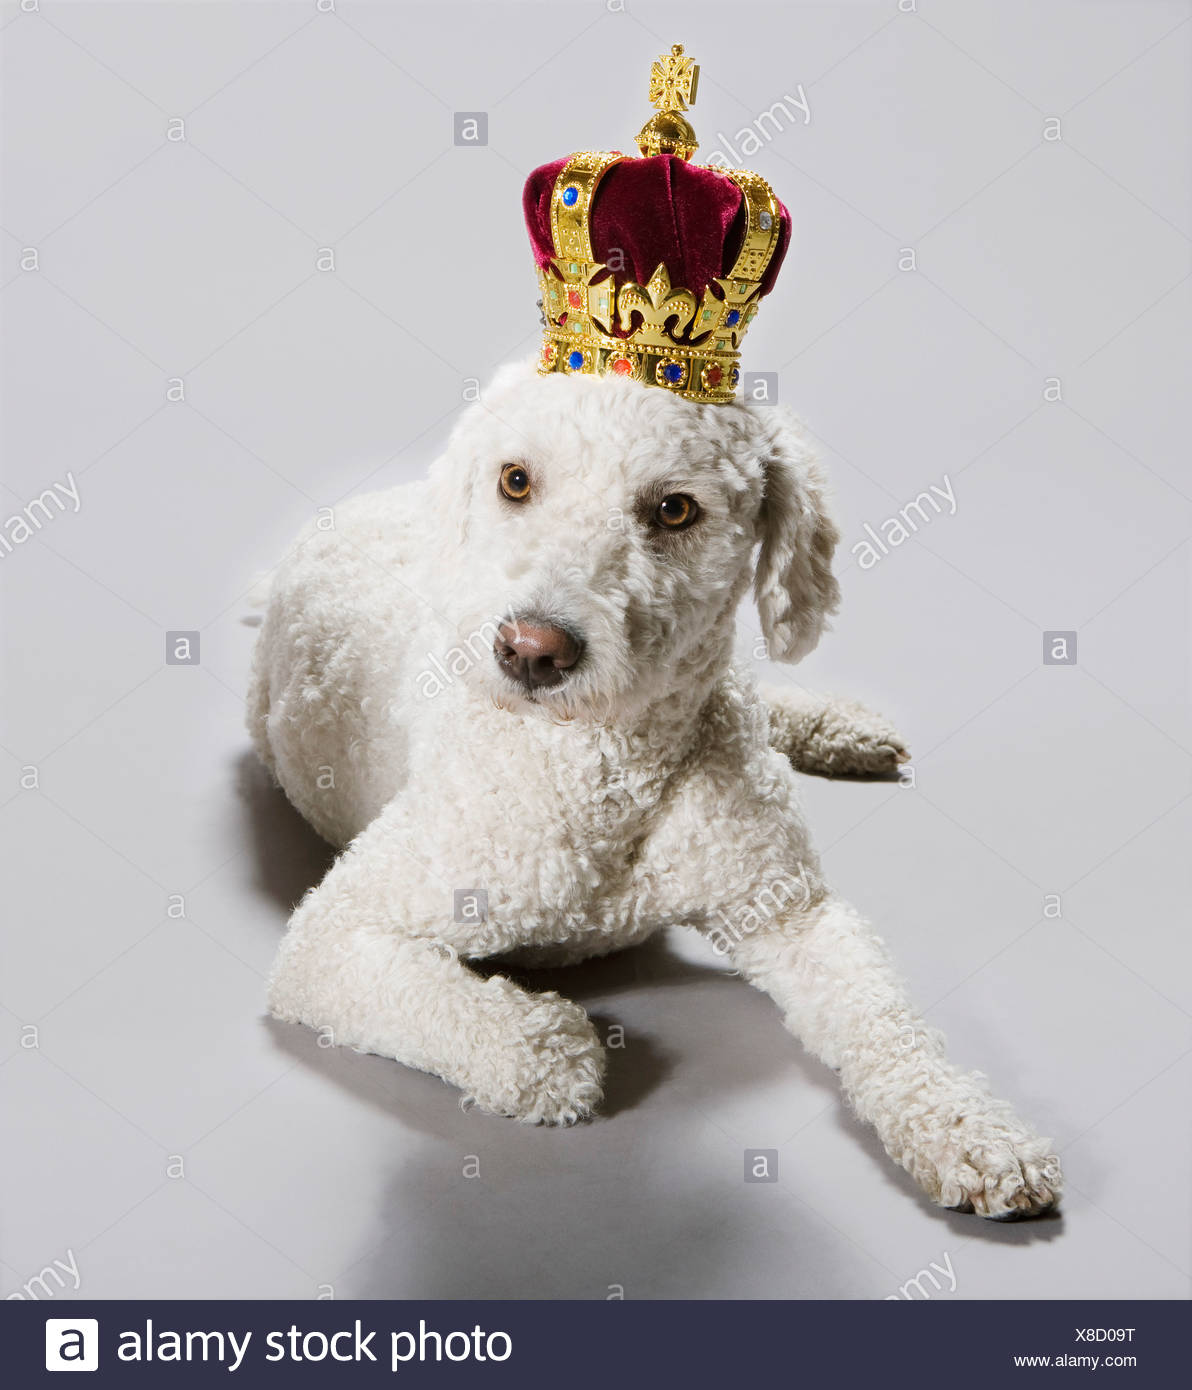 A Portuguese Waterdog wearing a crown - Stock Image